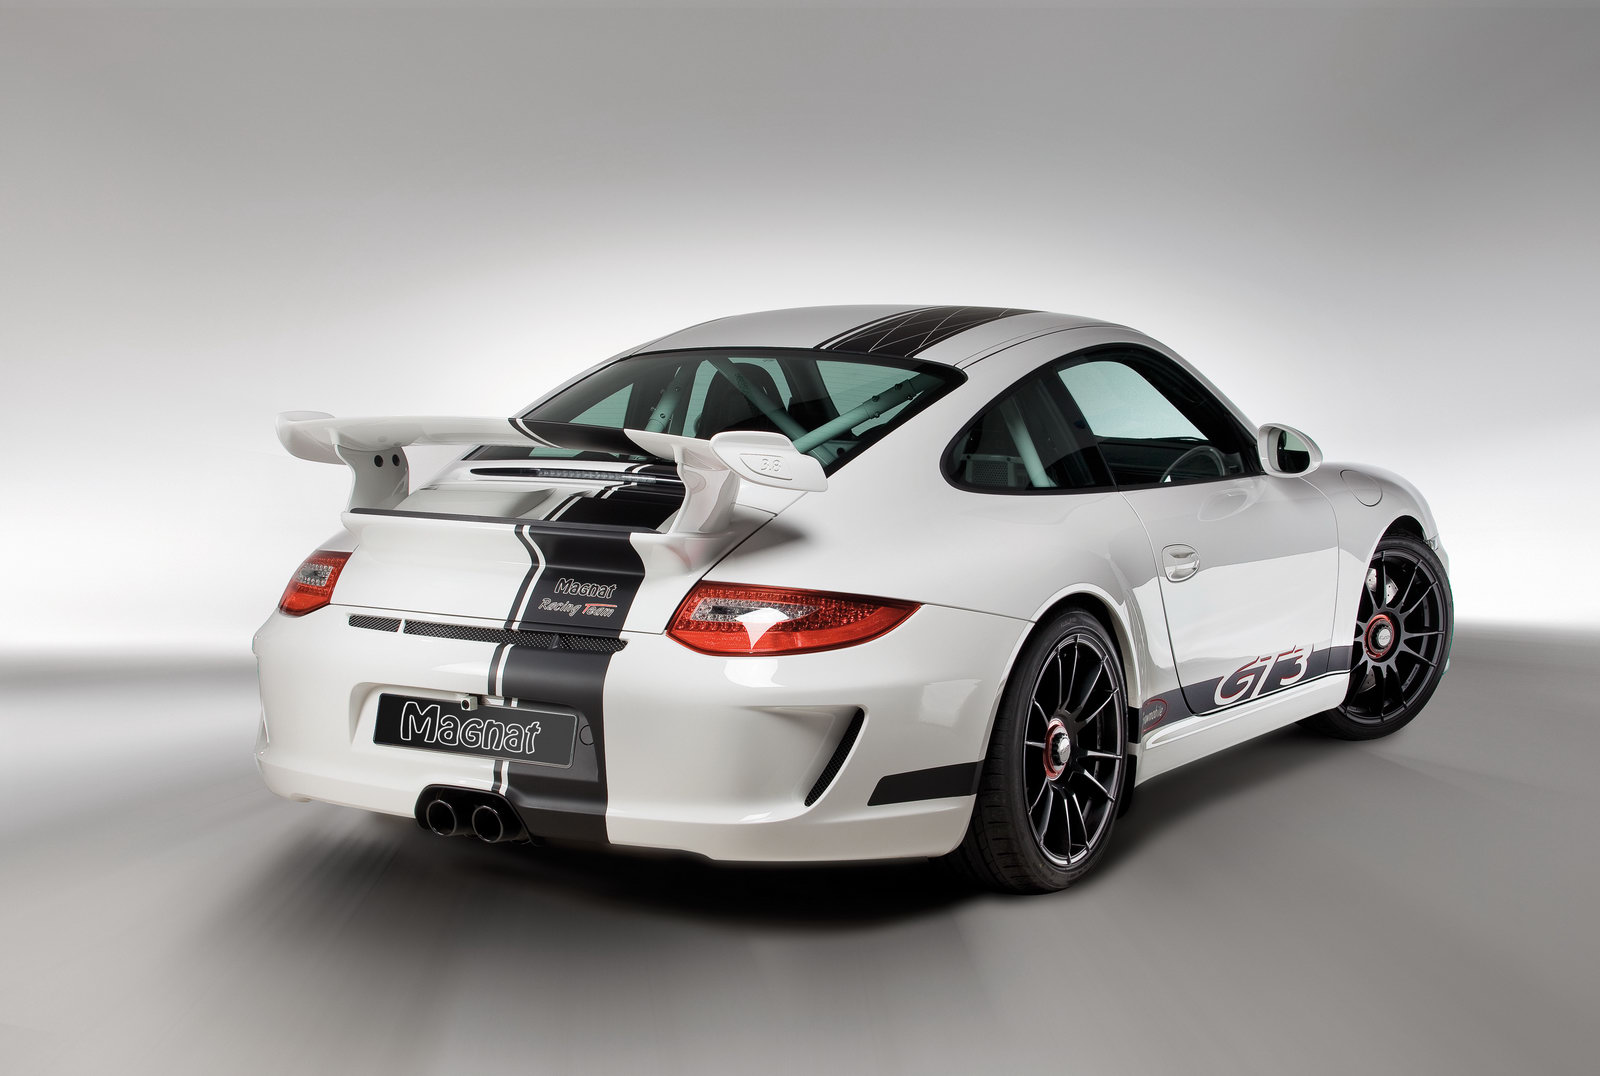 Magnat Porsche Auspuff 5 Porsche 911 GT3  Fuel Economic and Energy Efficient